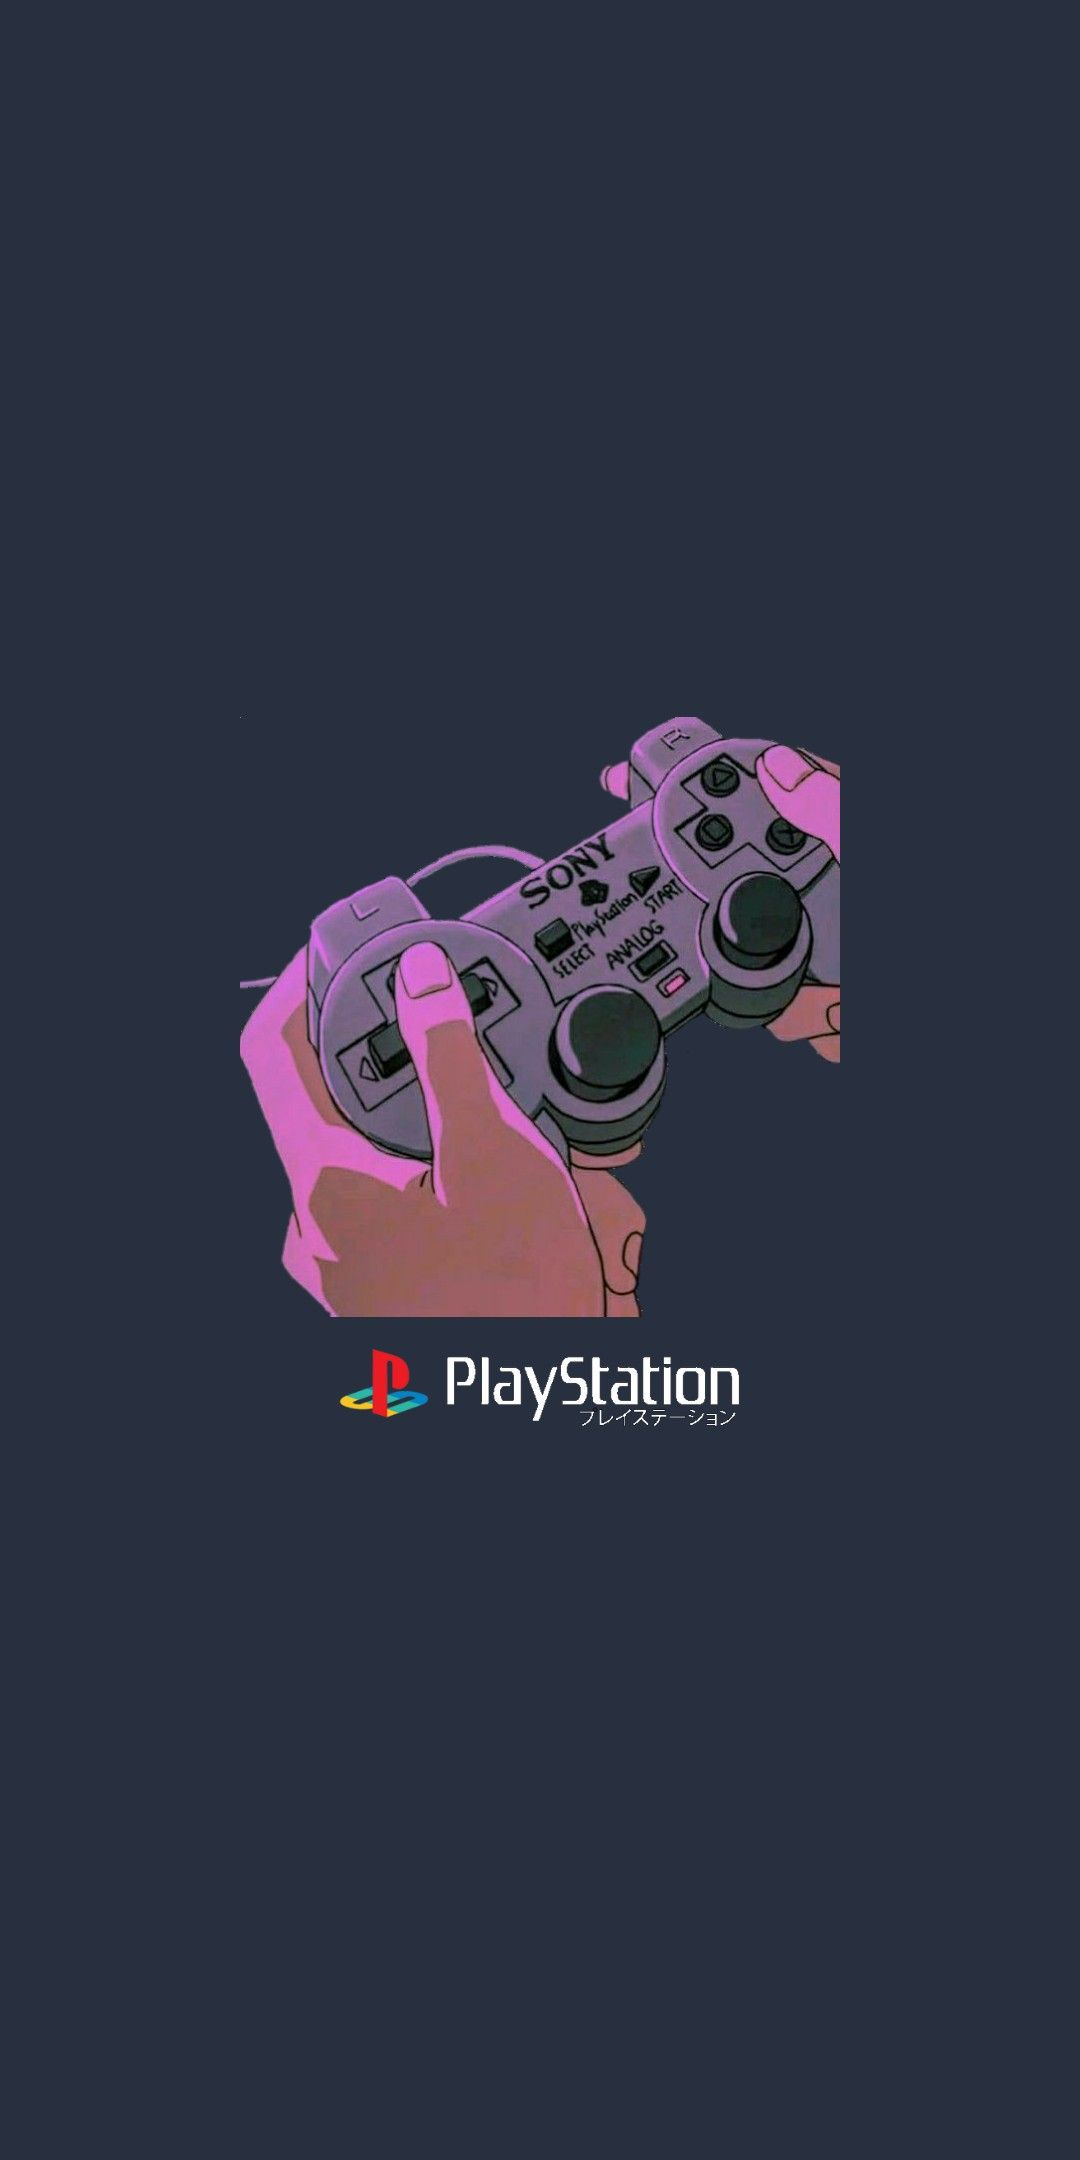 Free download PlayStation aesthetic wallpaper